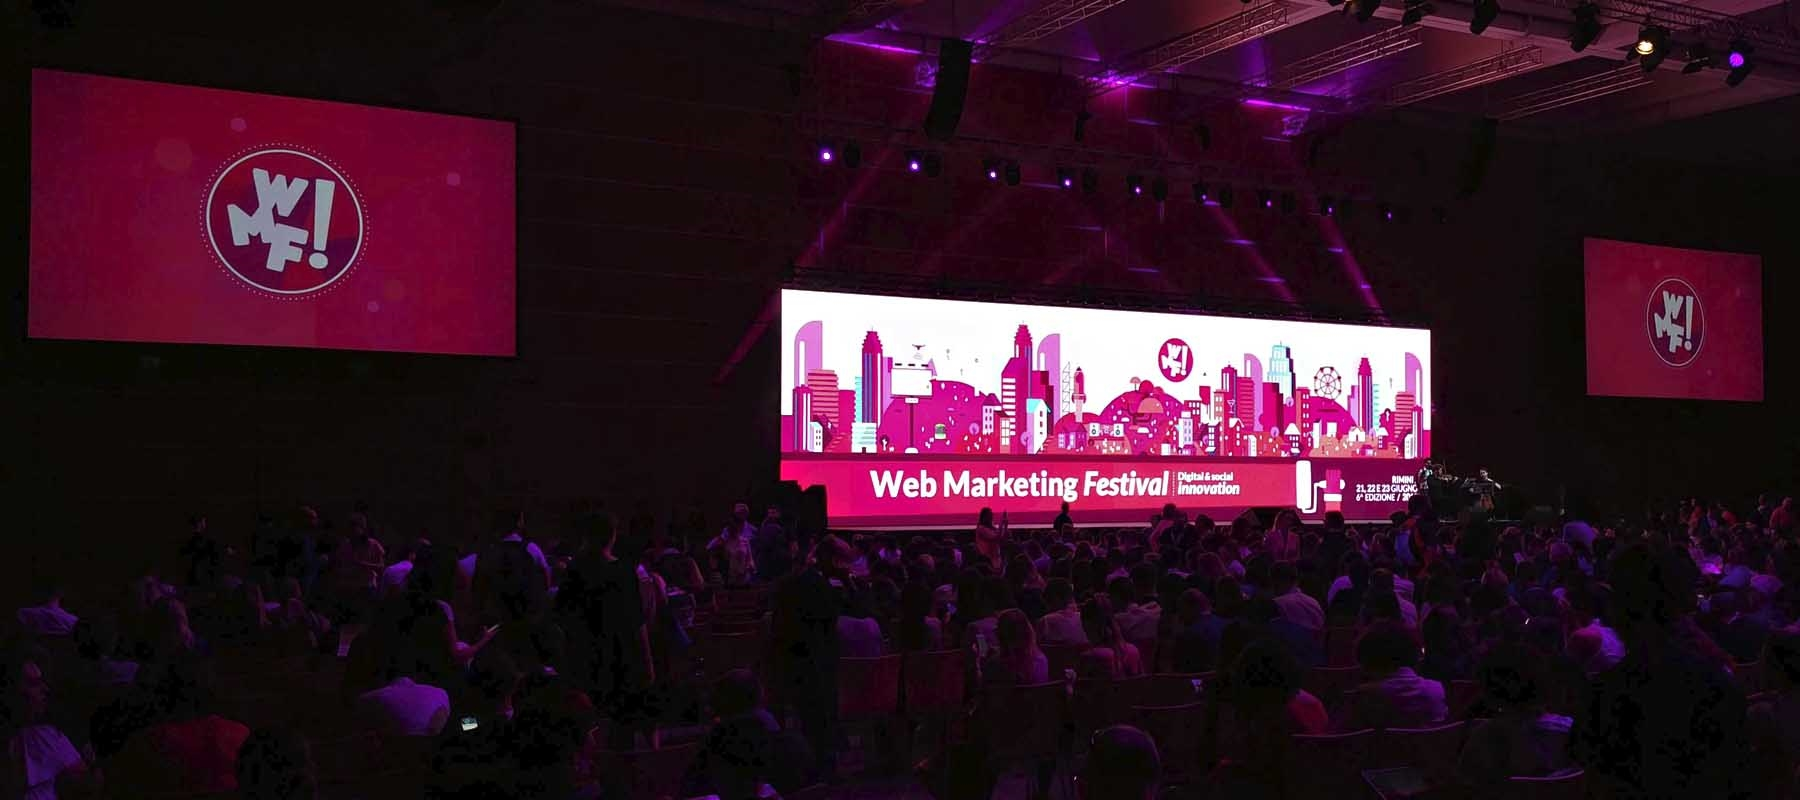 Web Marketing Festival 2018 sala plenaria